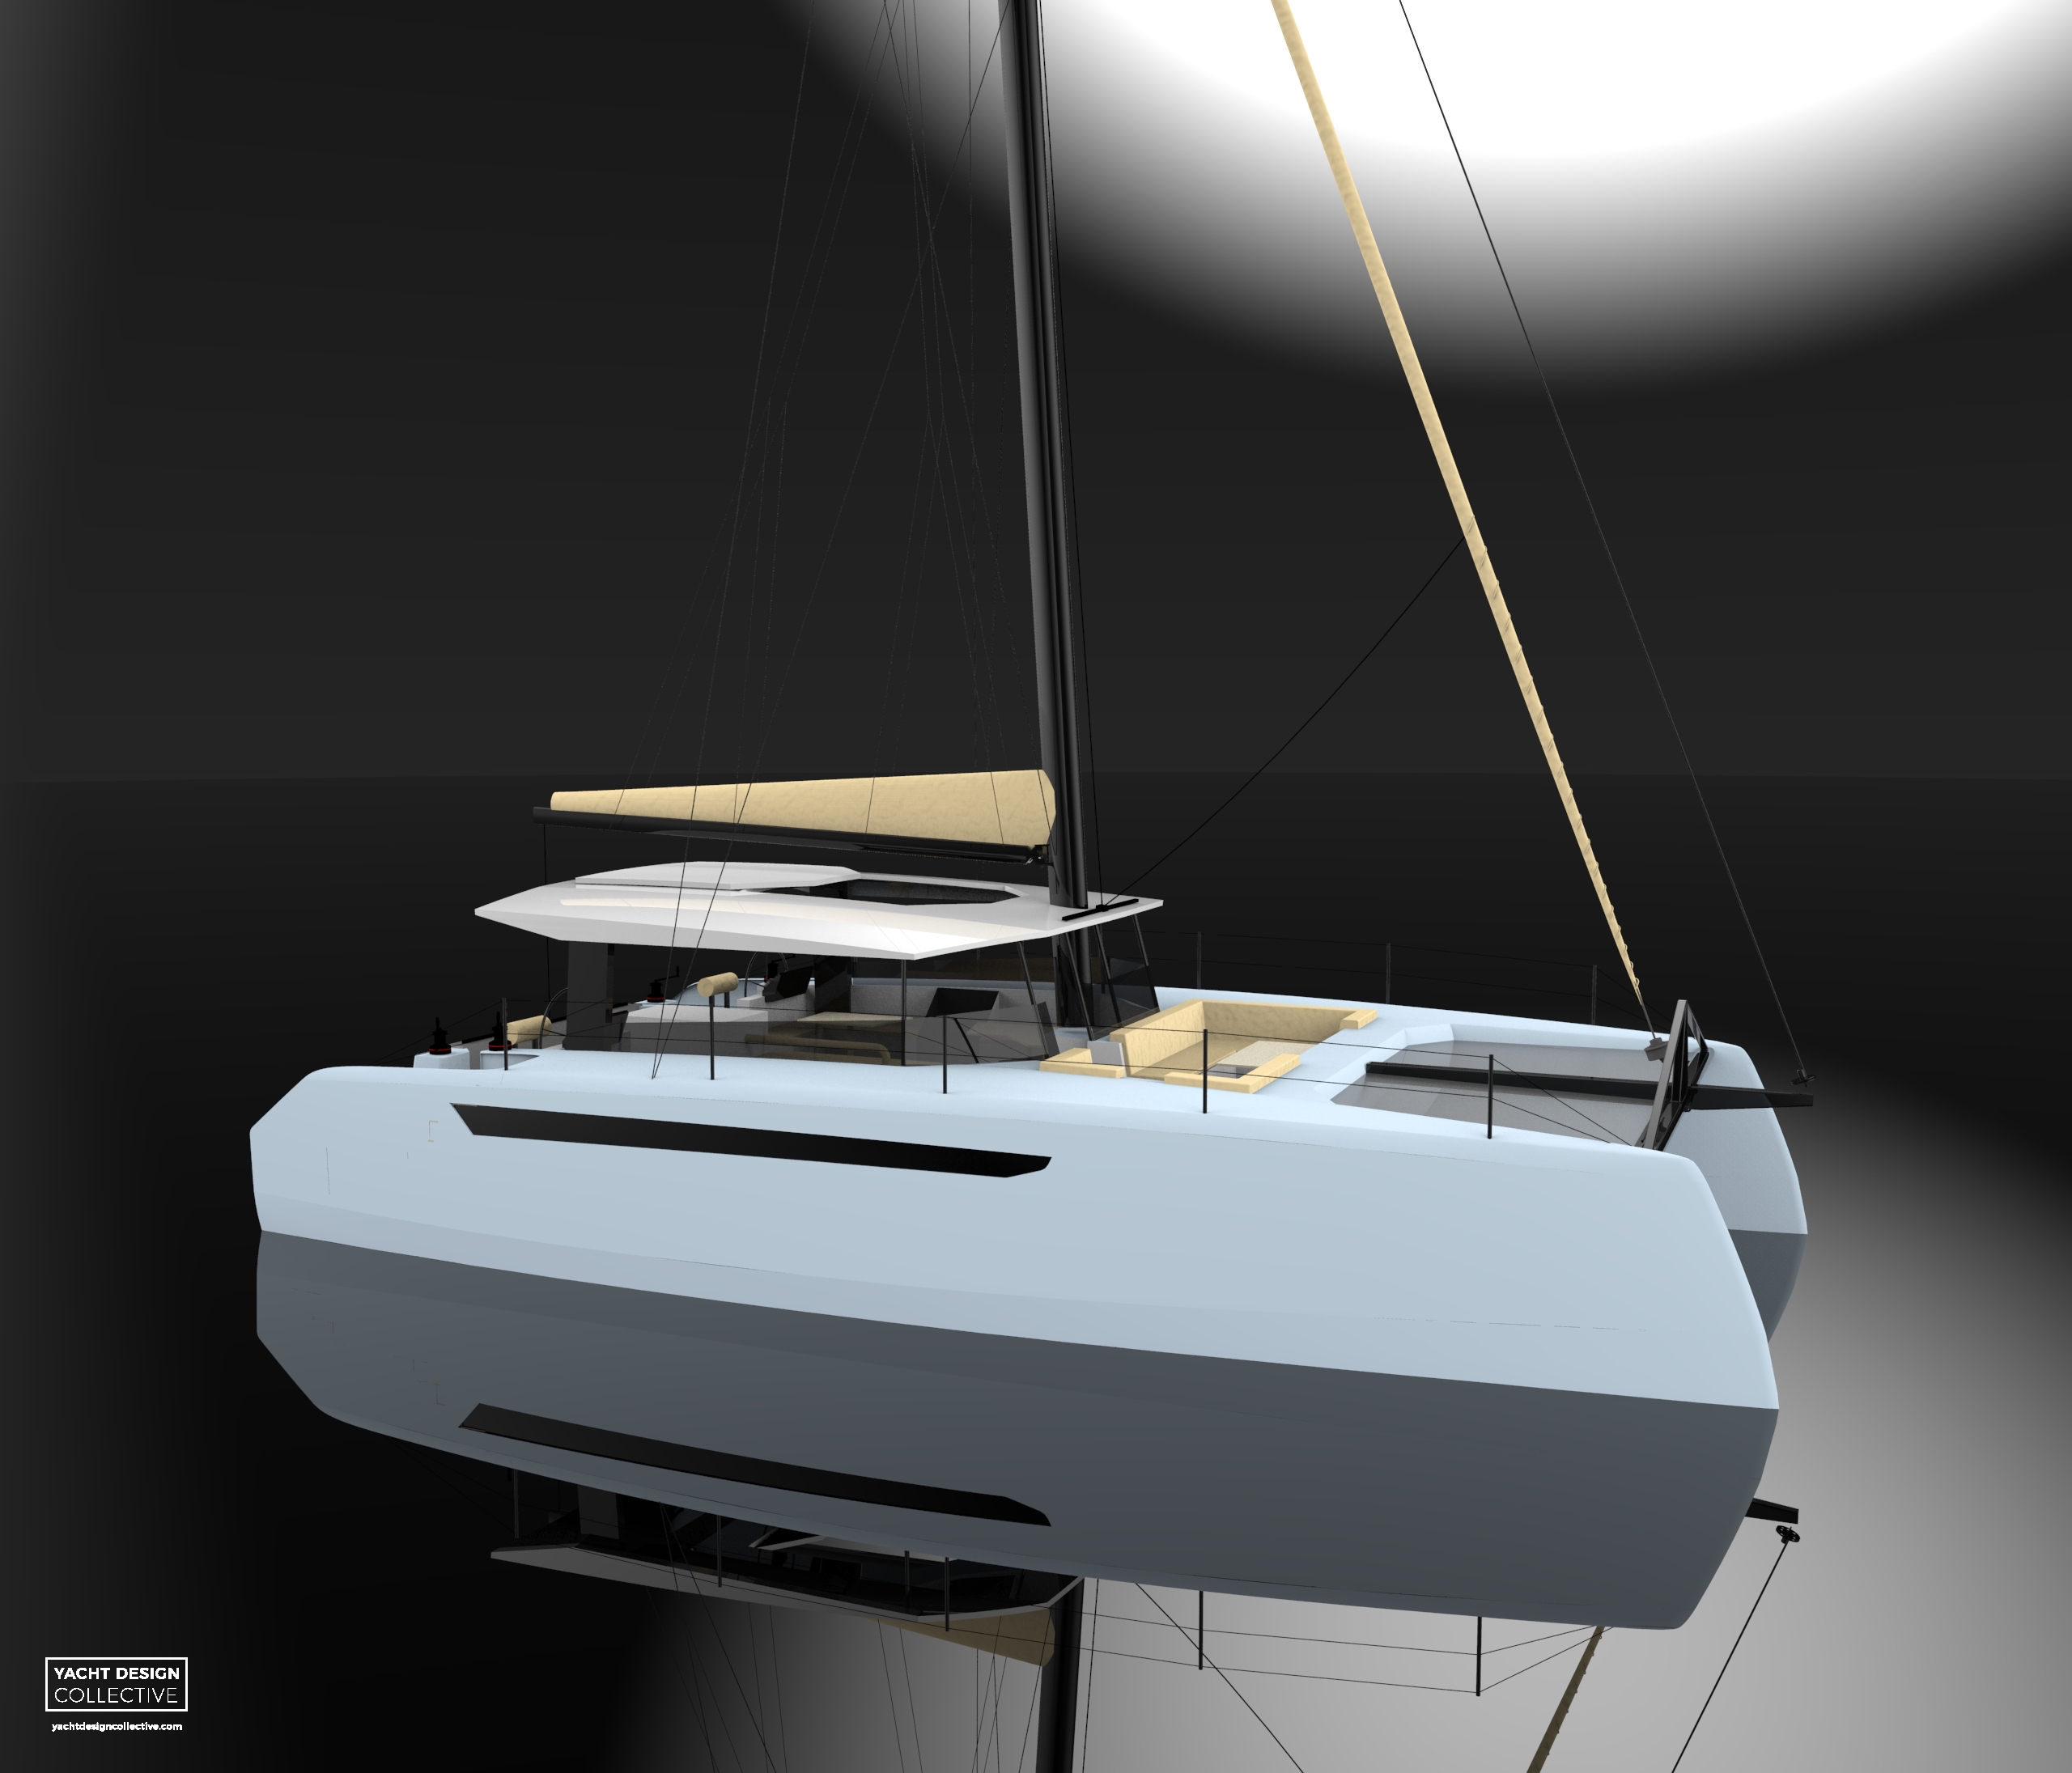 N42 Concept - Yacht Design Collective